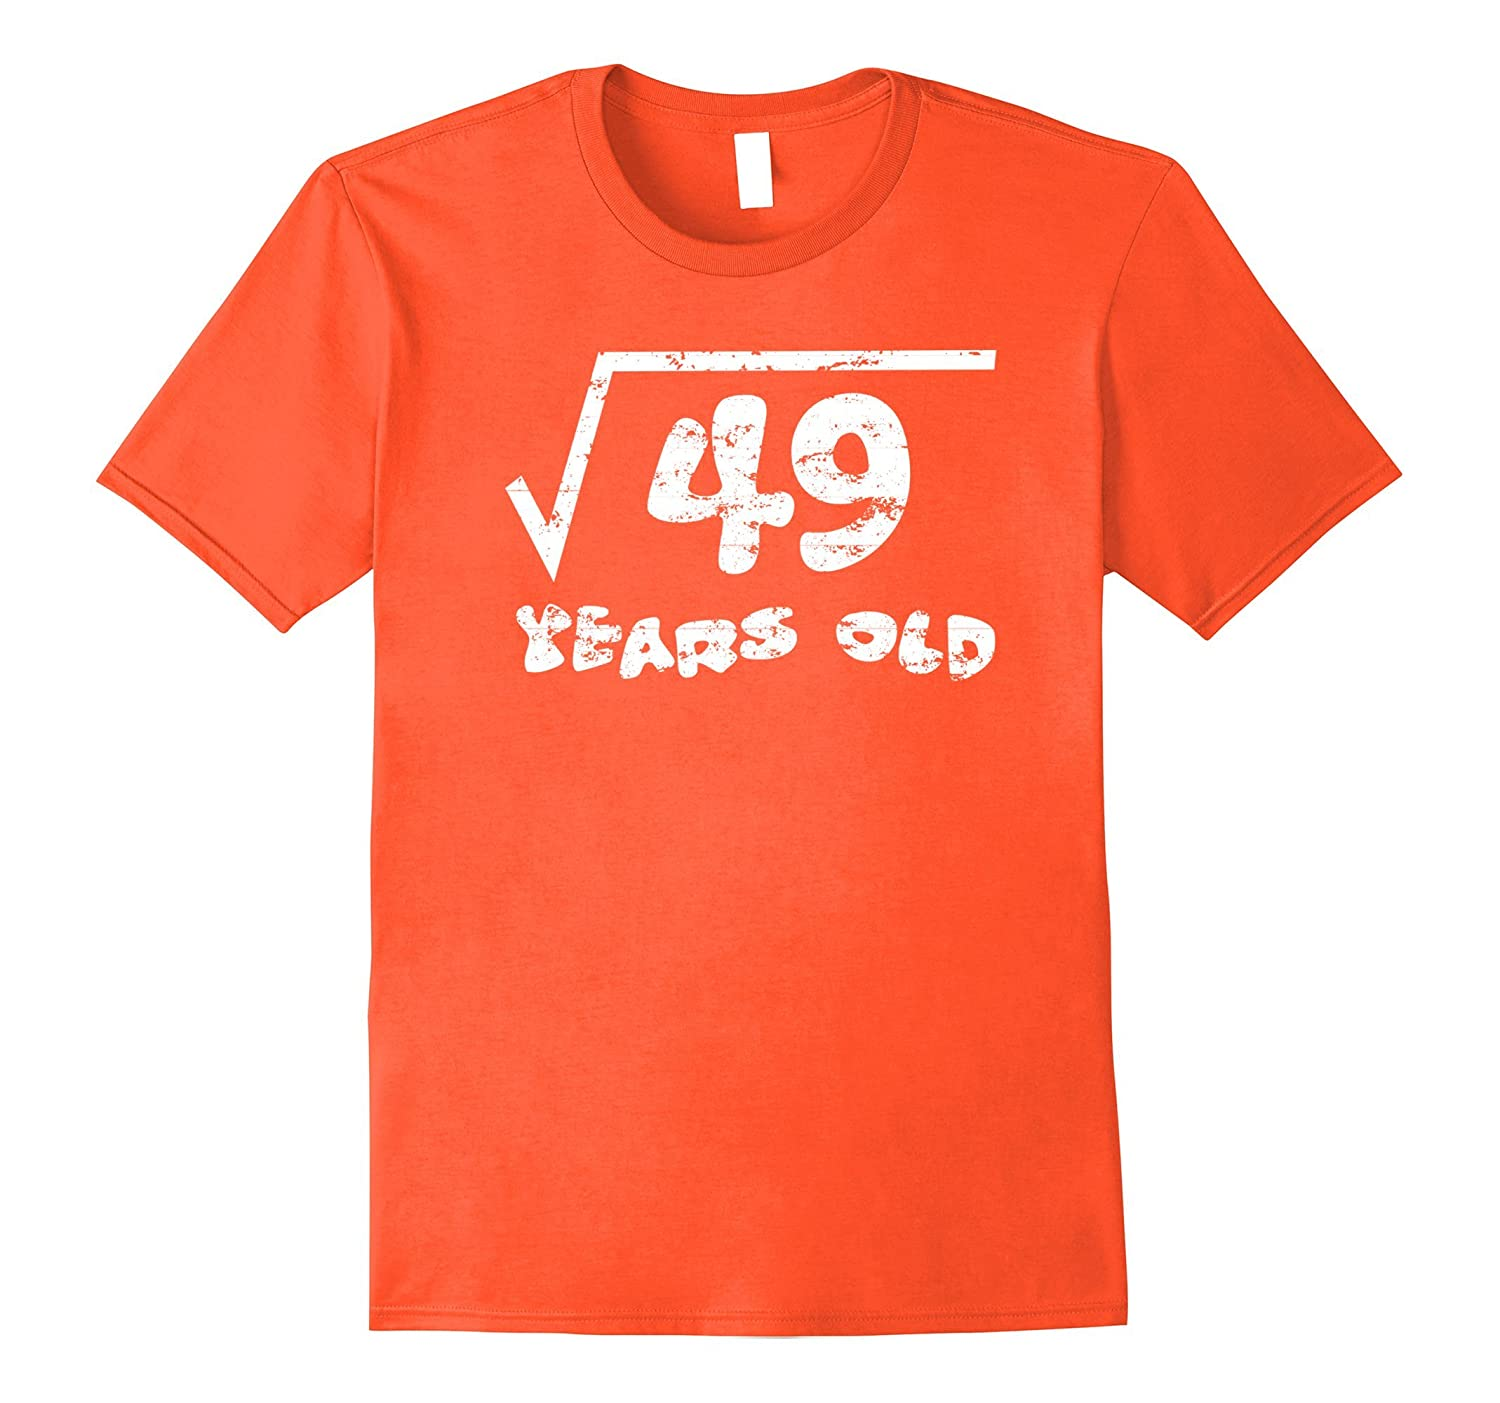 7th Birthday Kids Square Root Of 49 Math 7 Years Old T Shirt Pl Polozatee